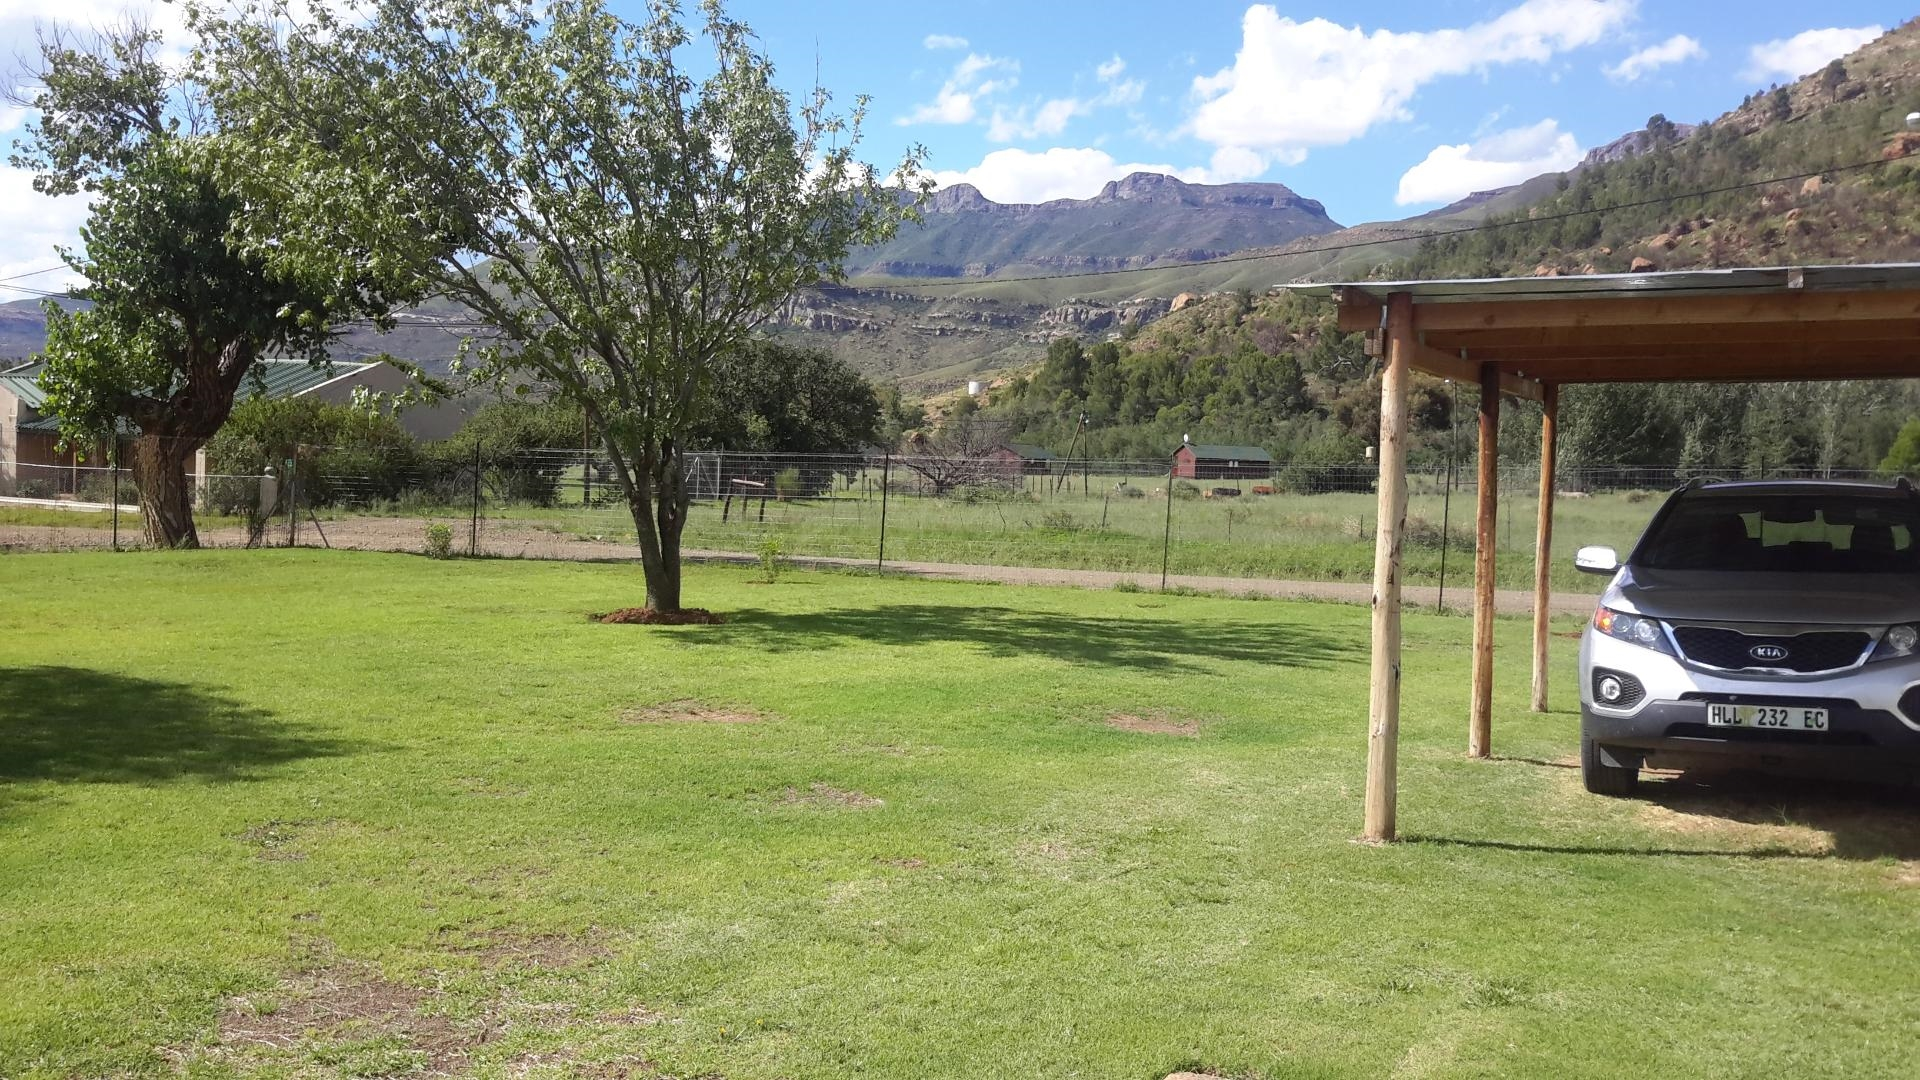 Carport outside with the magnificent view of the mountains in the background